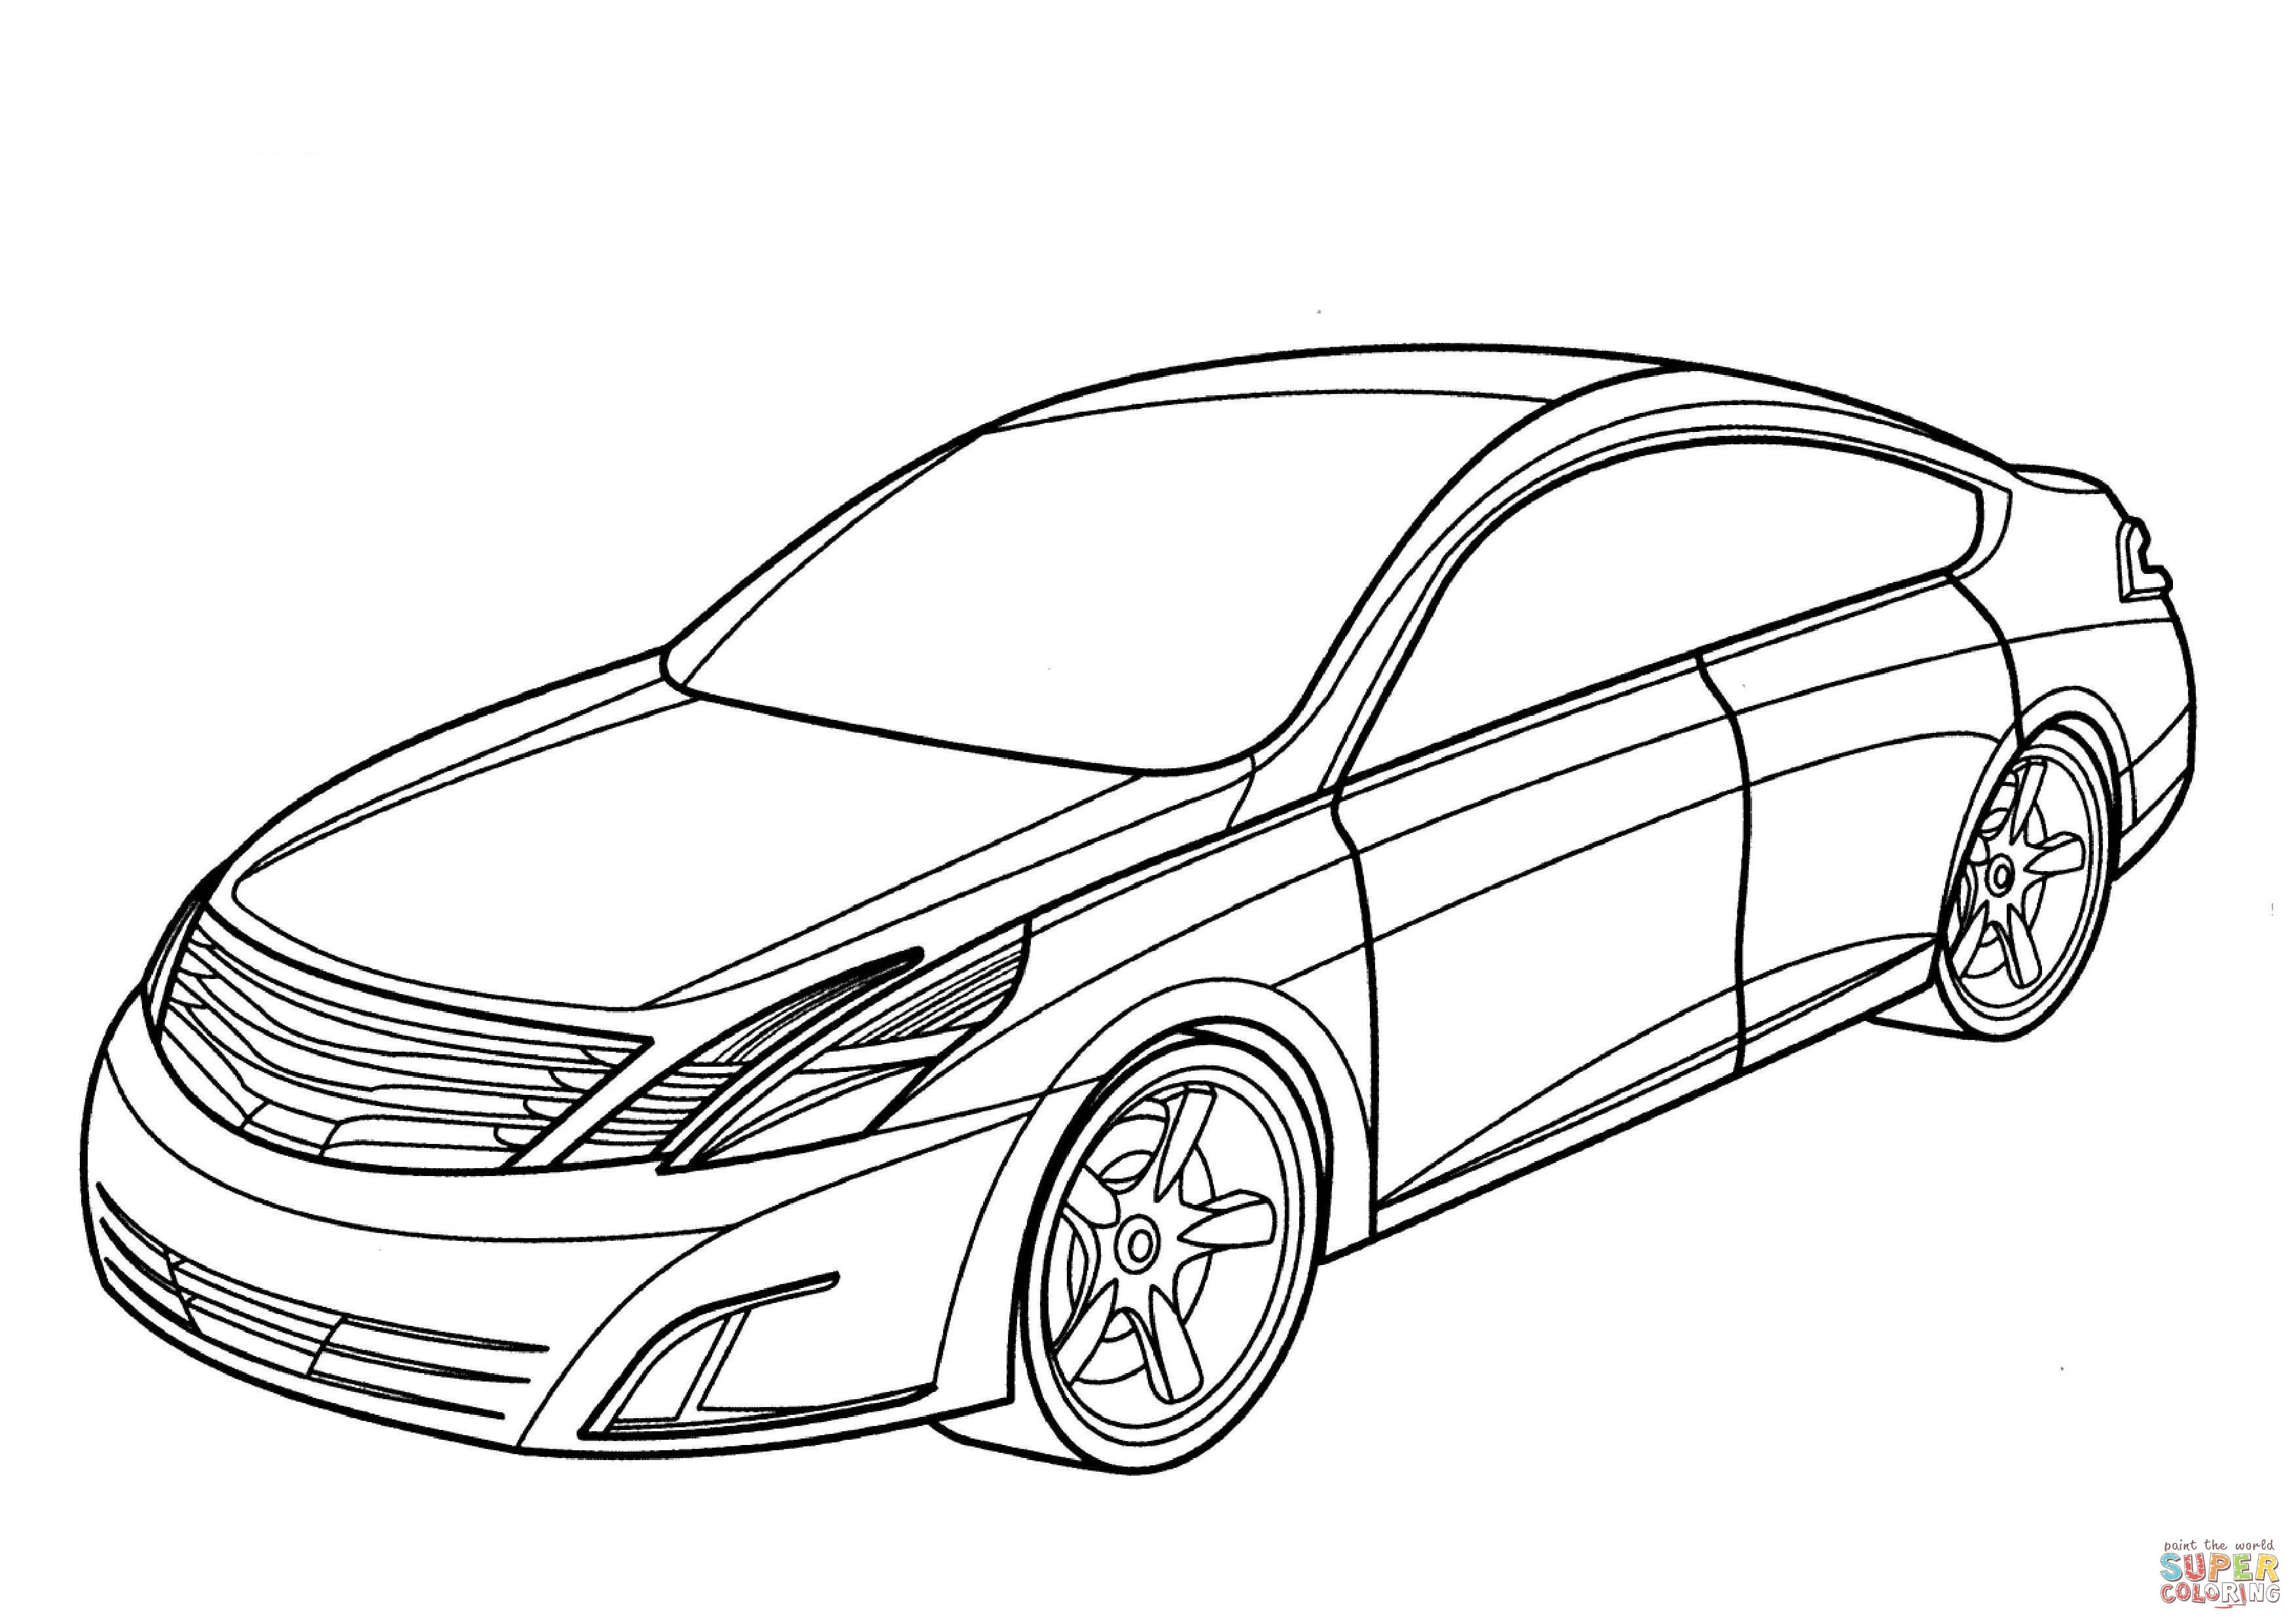 Nissan Skyline Gtr R32 Drawing Sketch Coloring Page